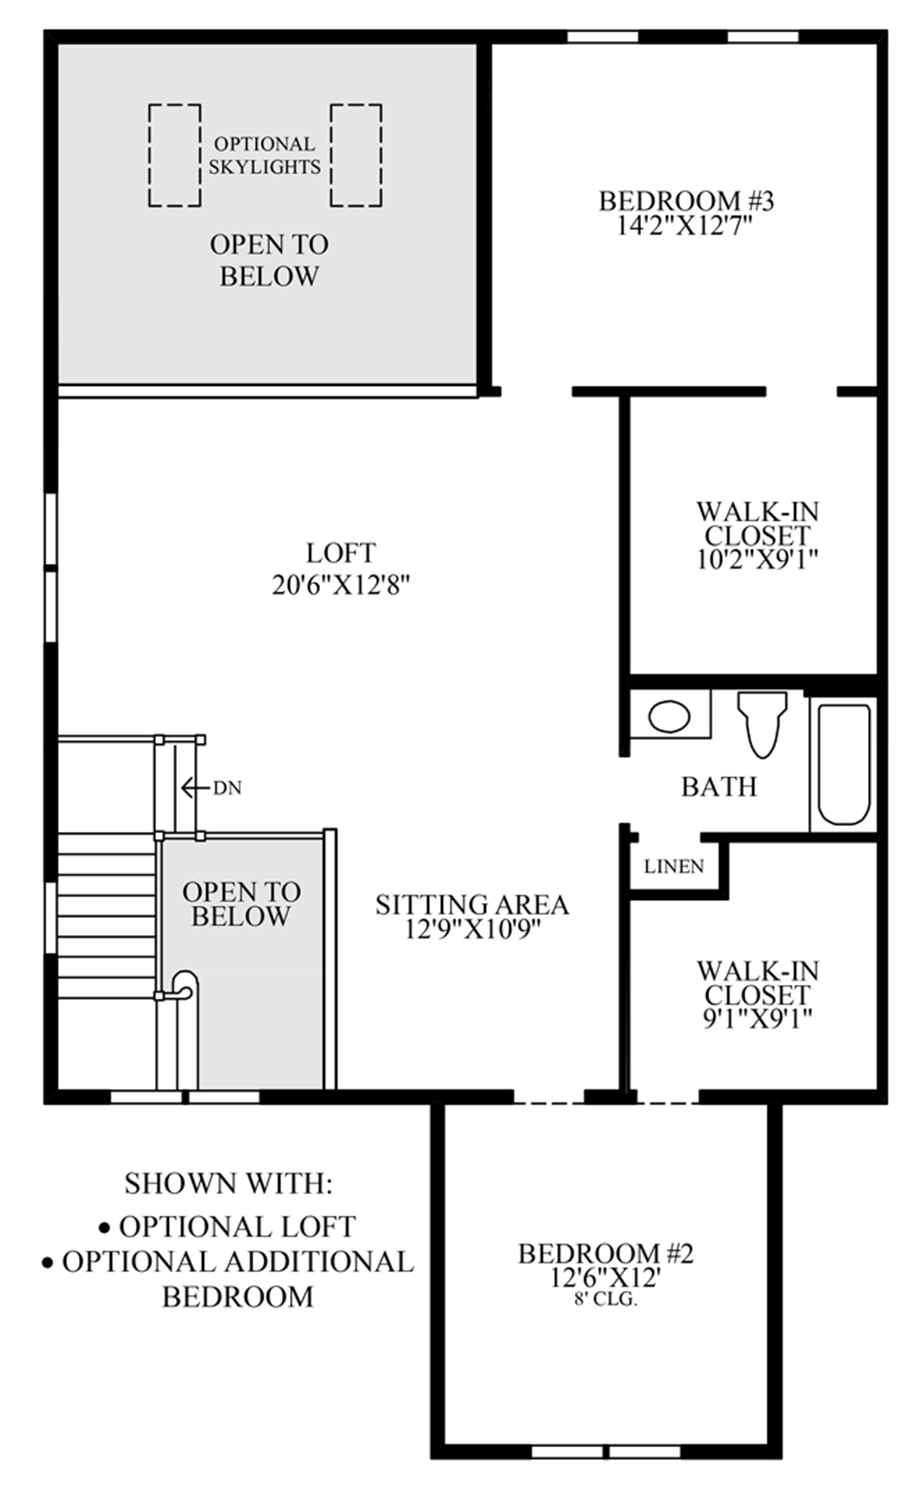 Optional Loft & Additional Bedroom Floor Plan